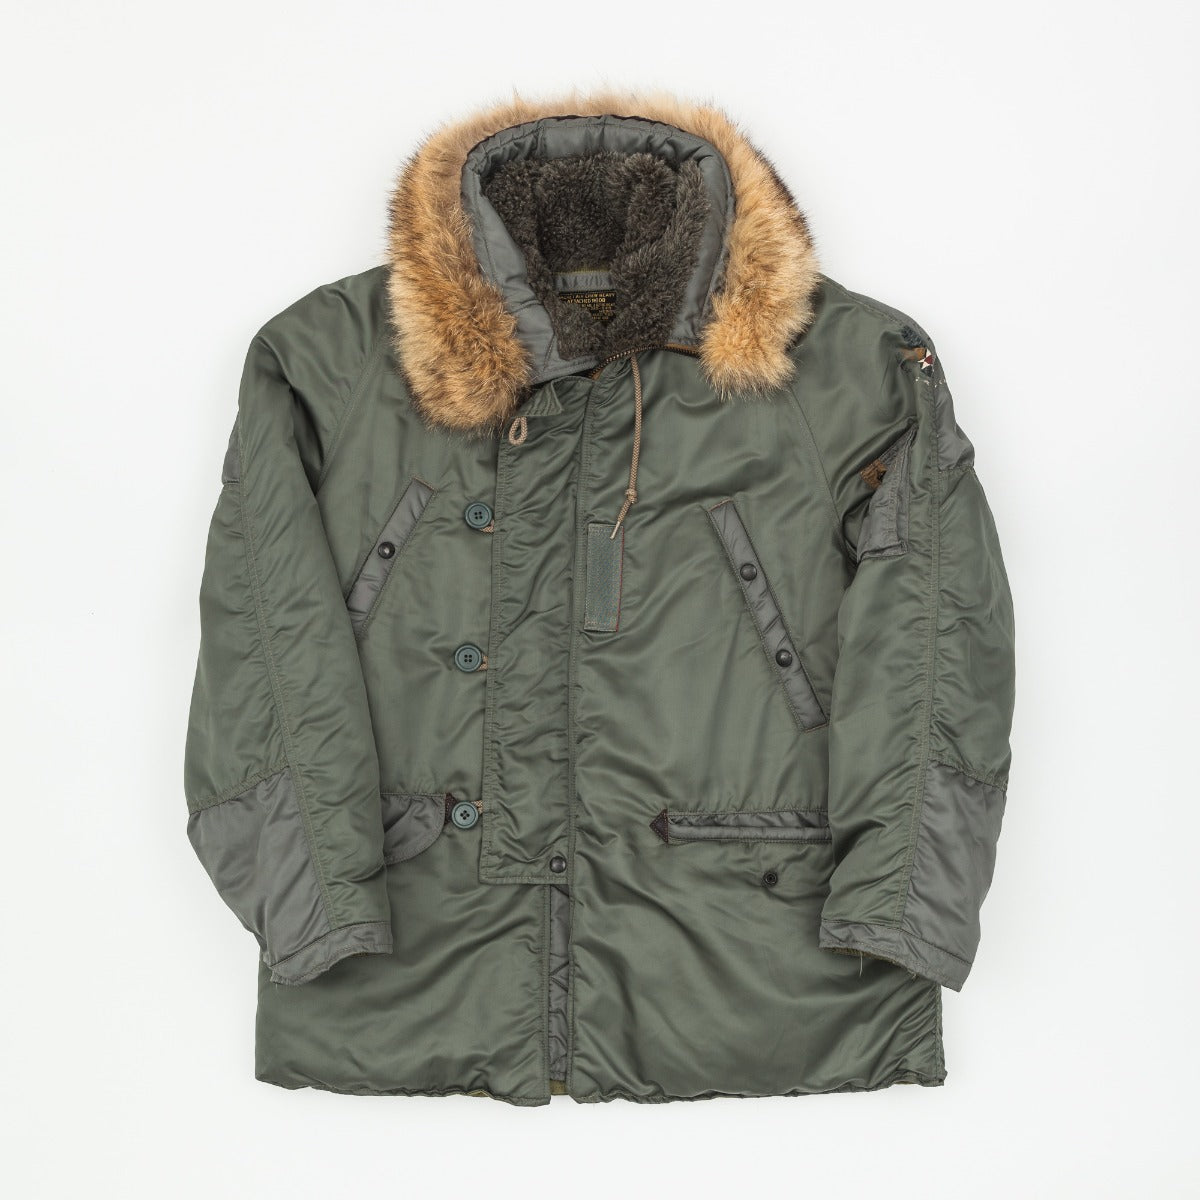 The Real McCoy's Albert Turner N-3B Parka